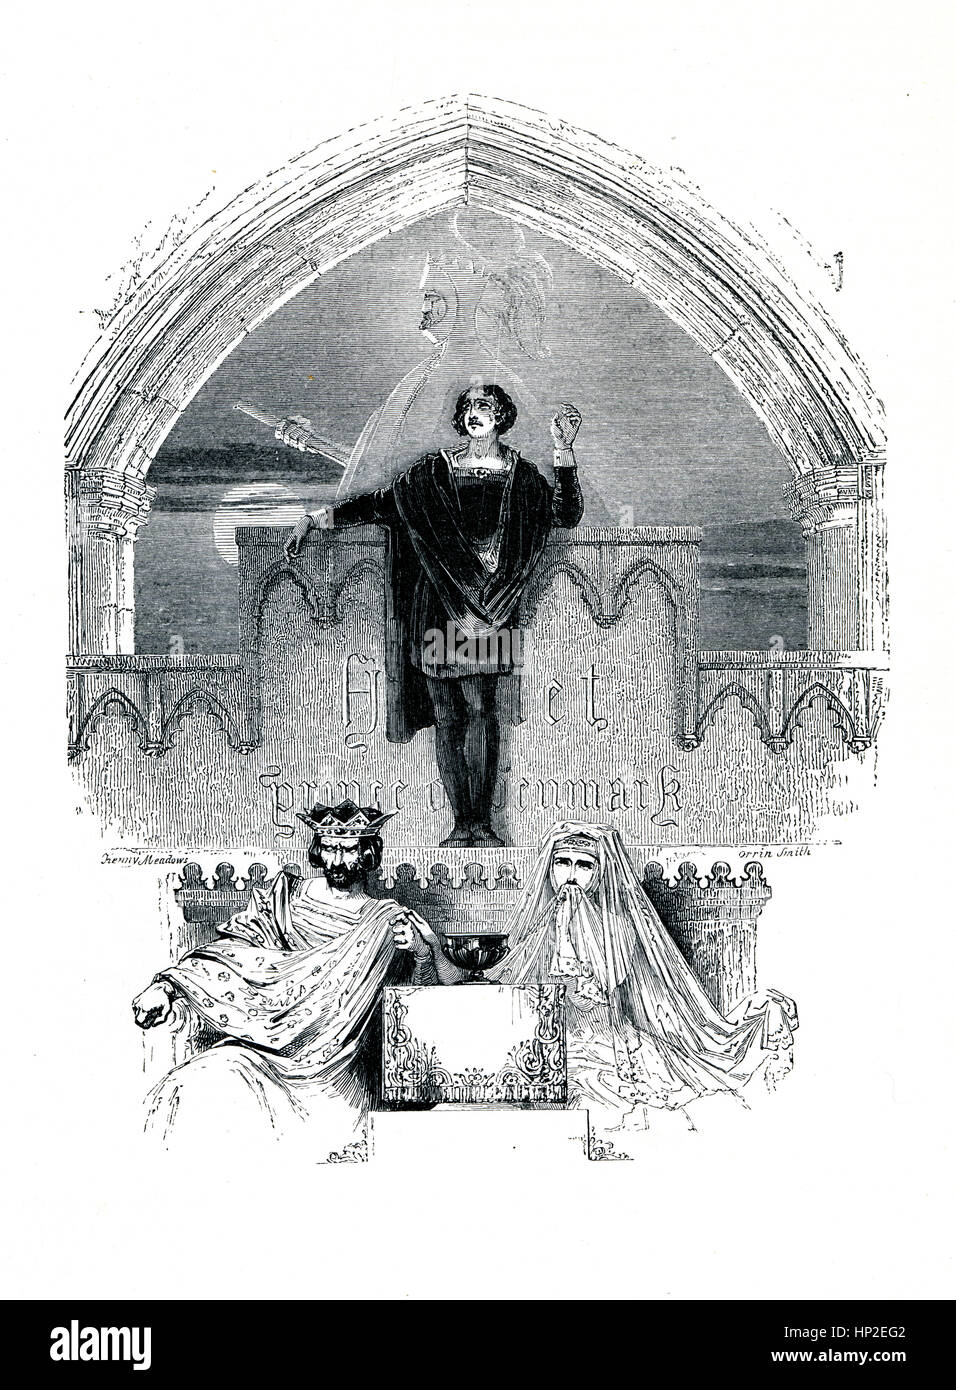 Hamlet, Victorian book frontispiece for the play by William Shakespeare from the 1849 illustrated book Heroines - Stock Image